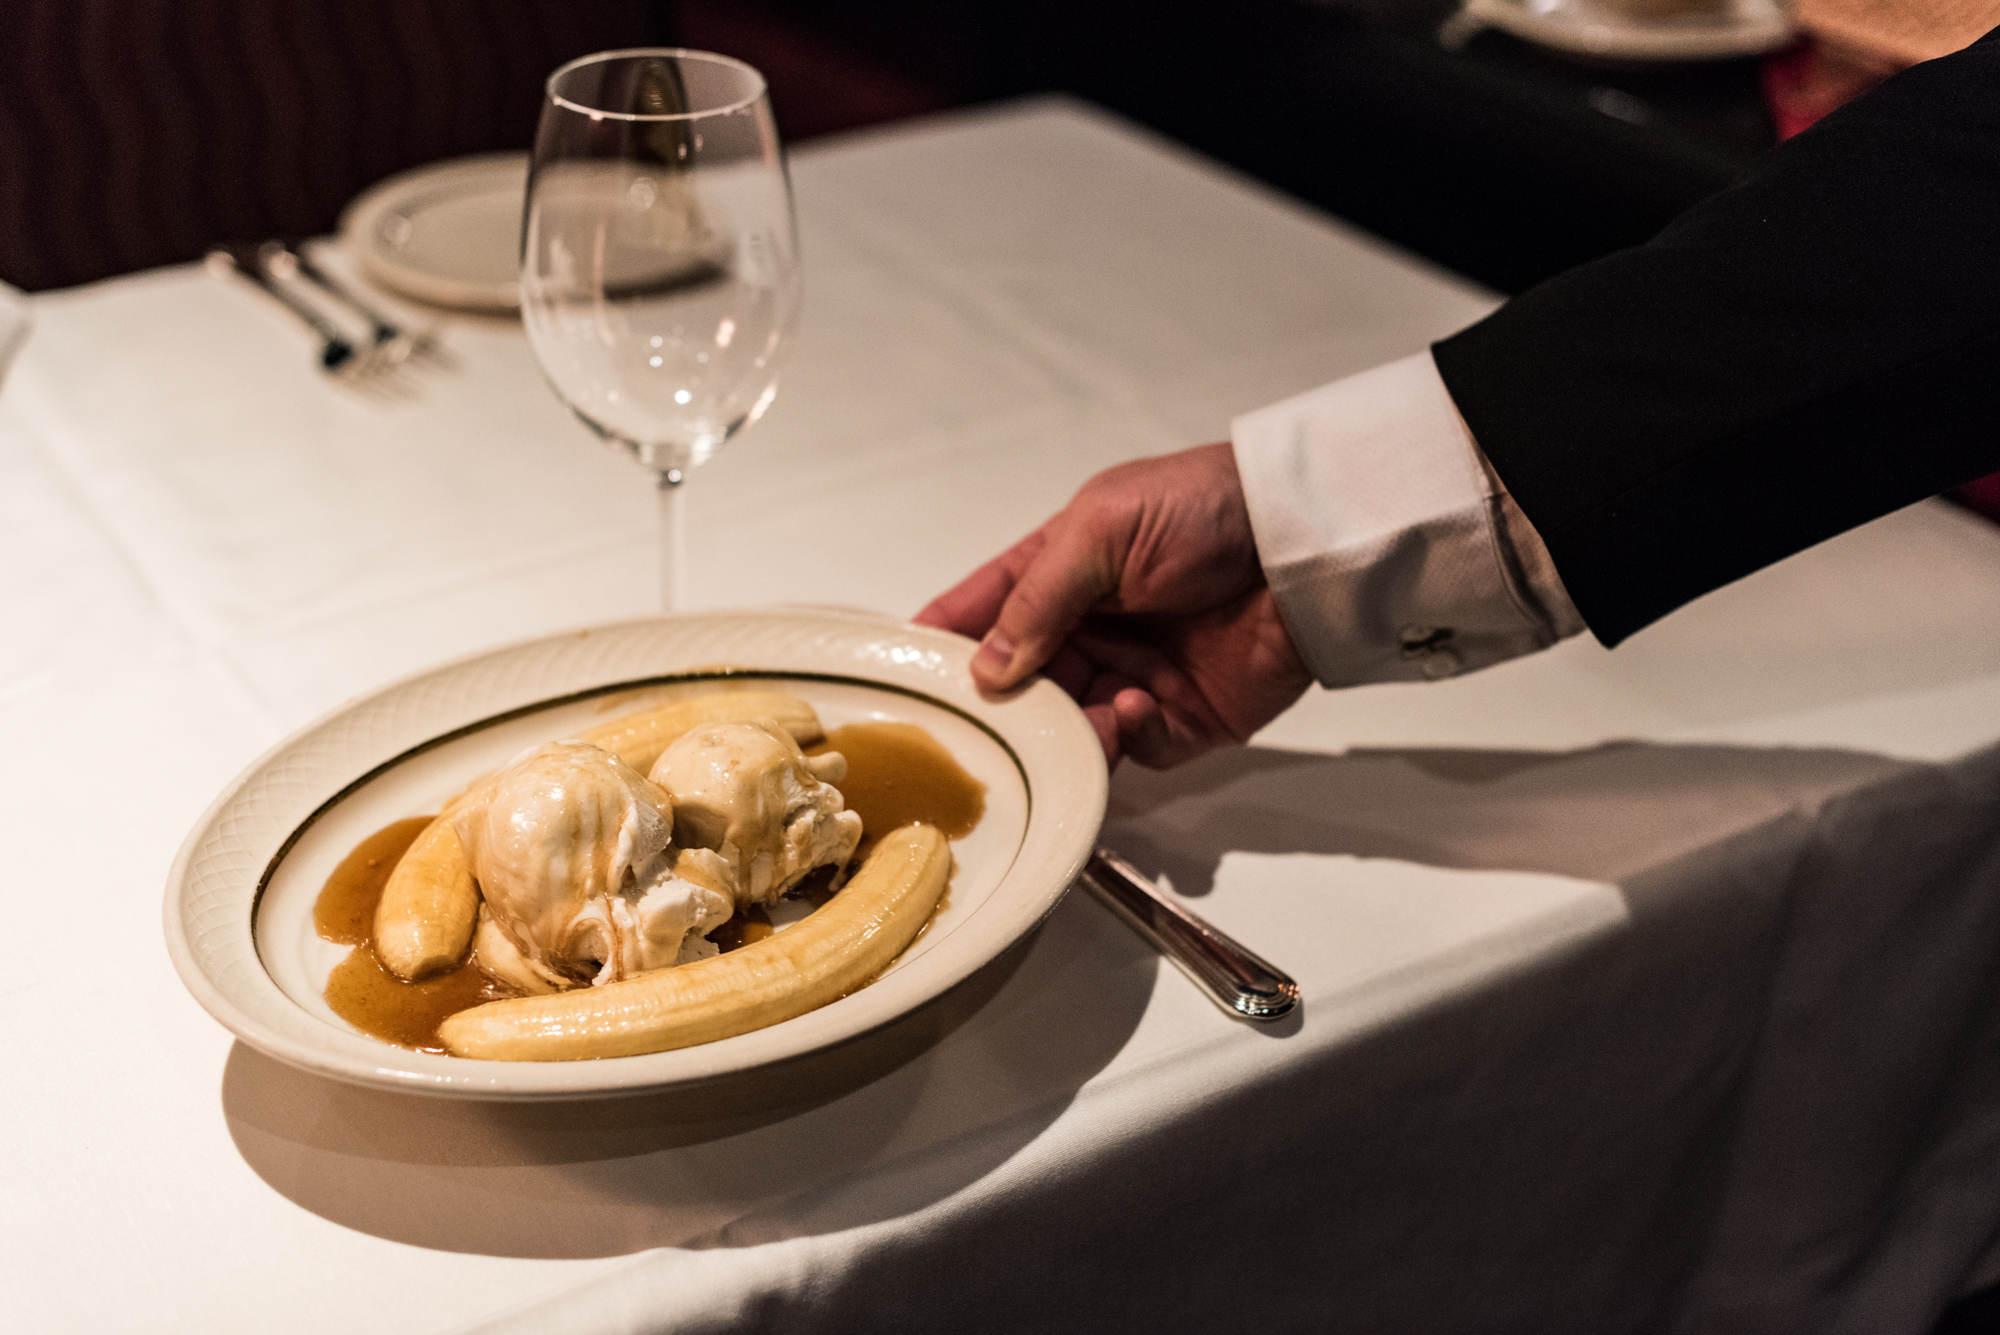 Classic Table Side Dishes See El Gaucho S Beloved Bananas Foster Prepared Tableside Eater